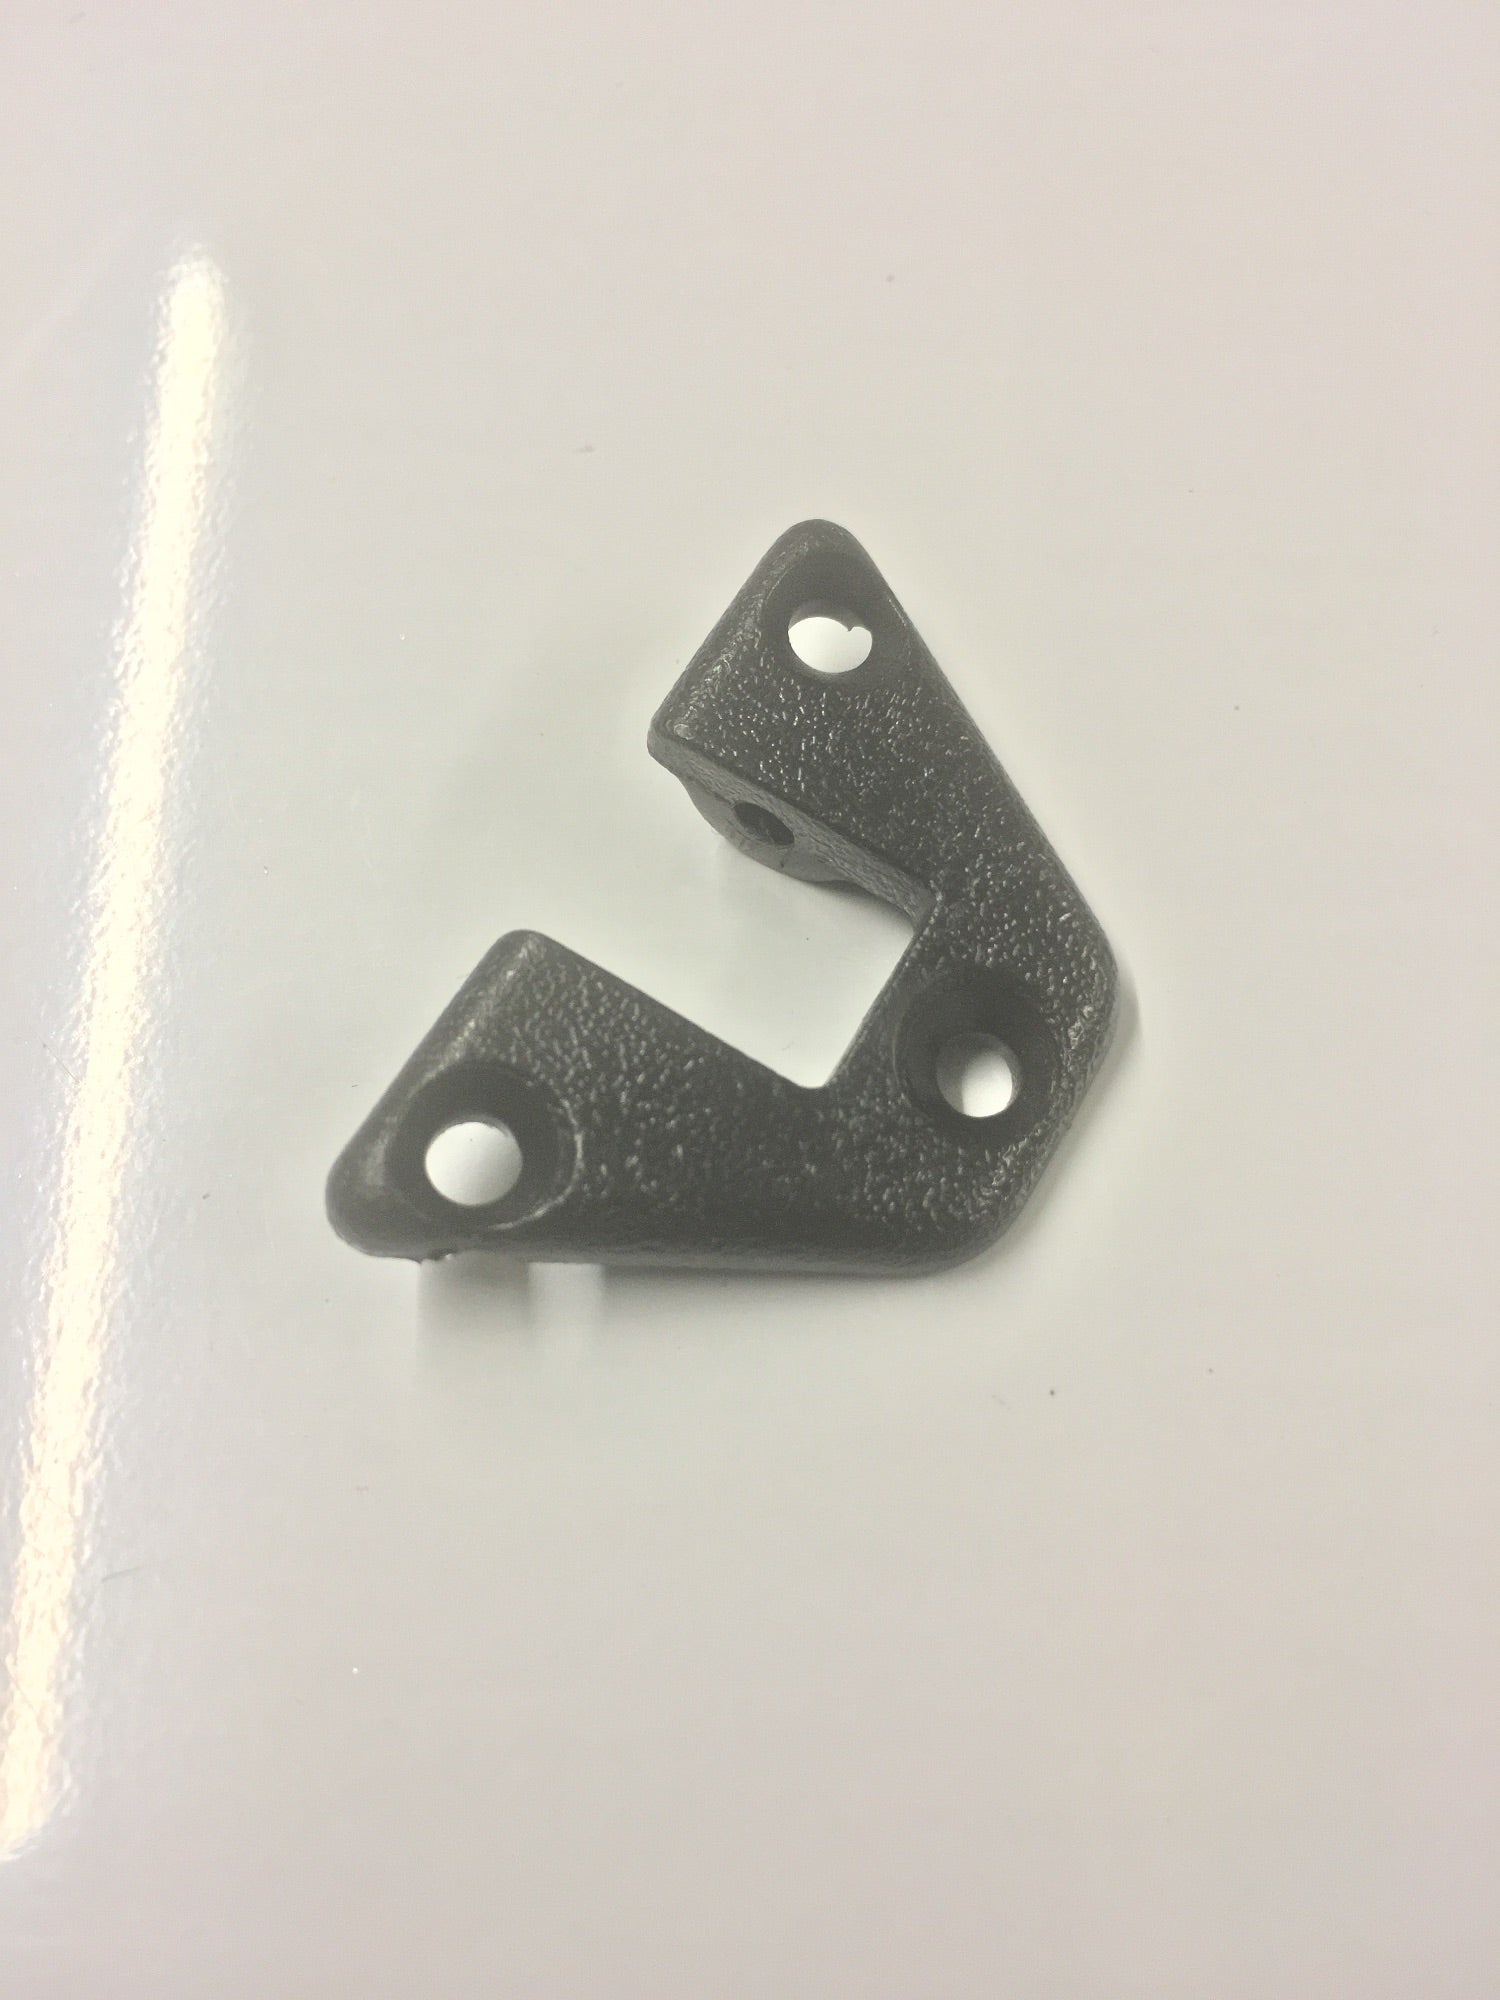 Porsche 924 944 968 sunroof clamp lever hinge retaining bracket mount 477 871 219 ((CB7c)) - Woolies Workshop - Porsche 924 944 spares